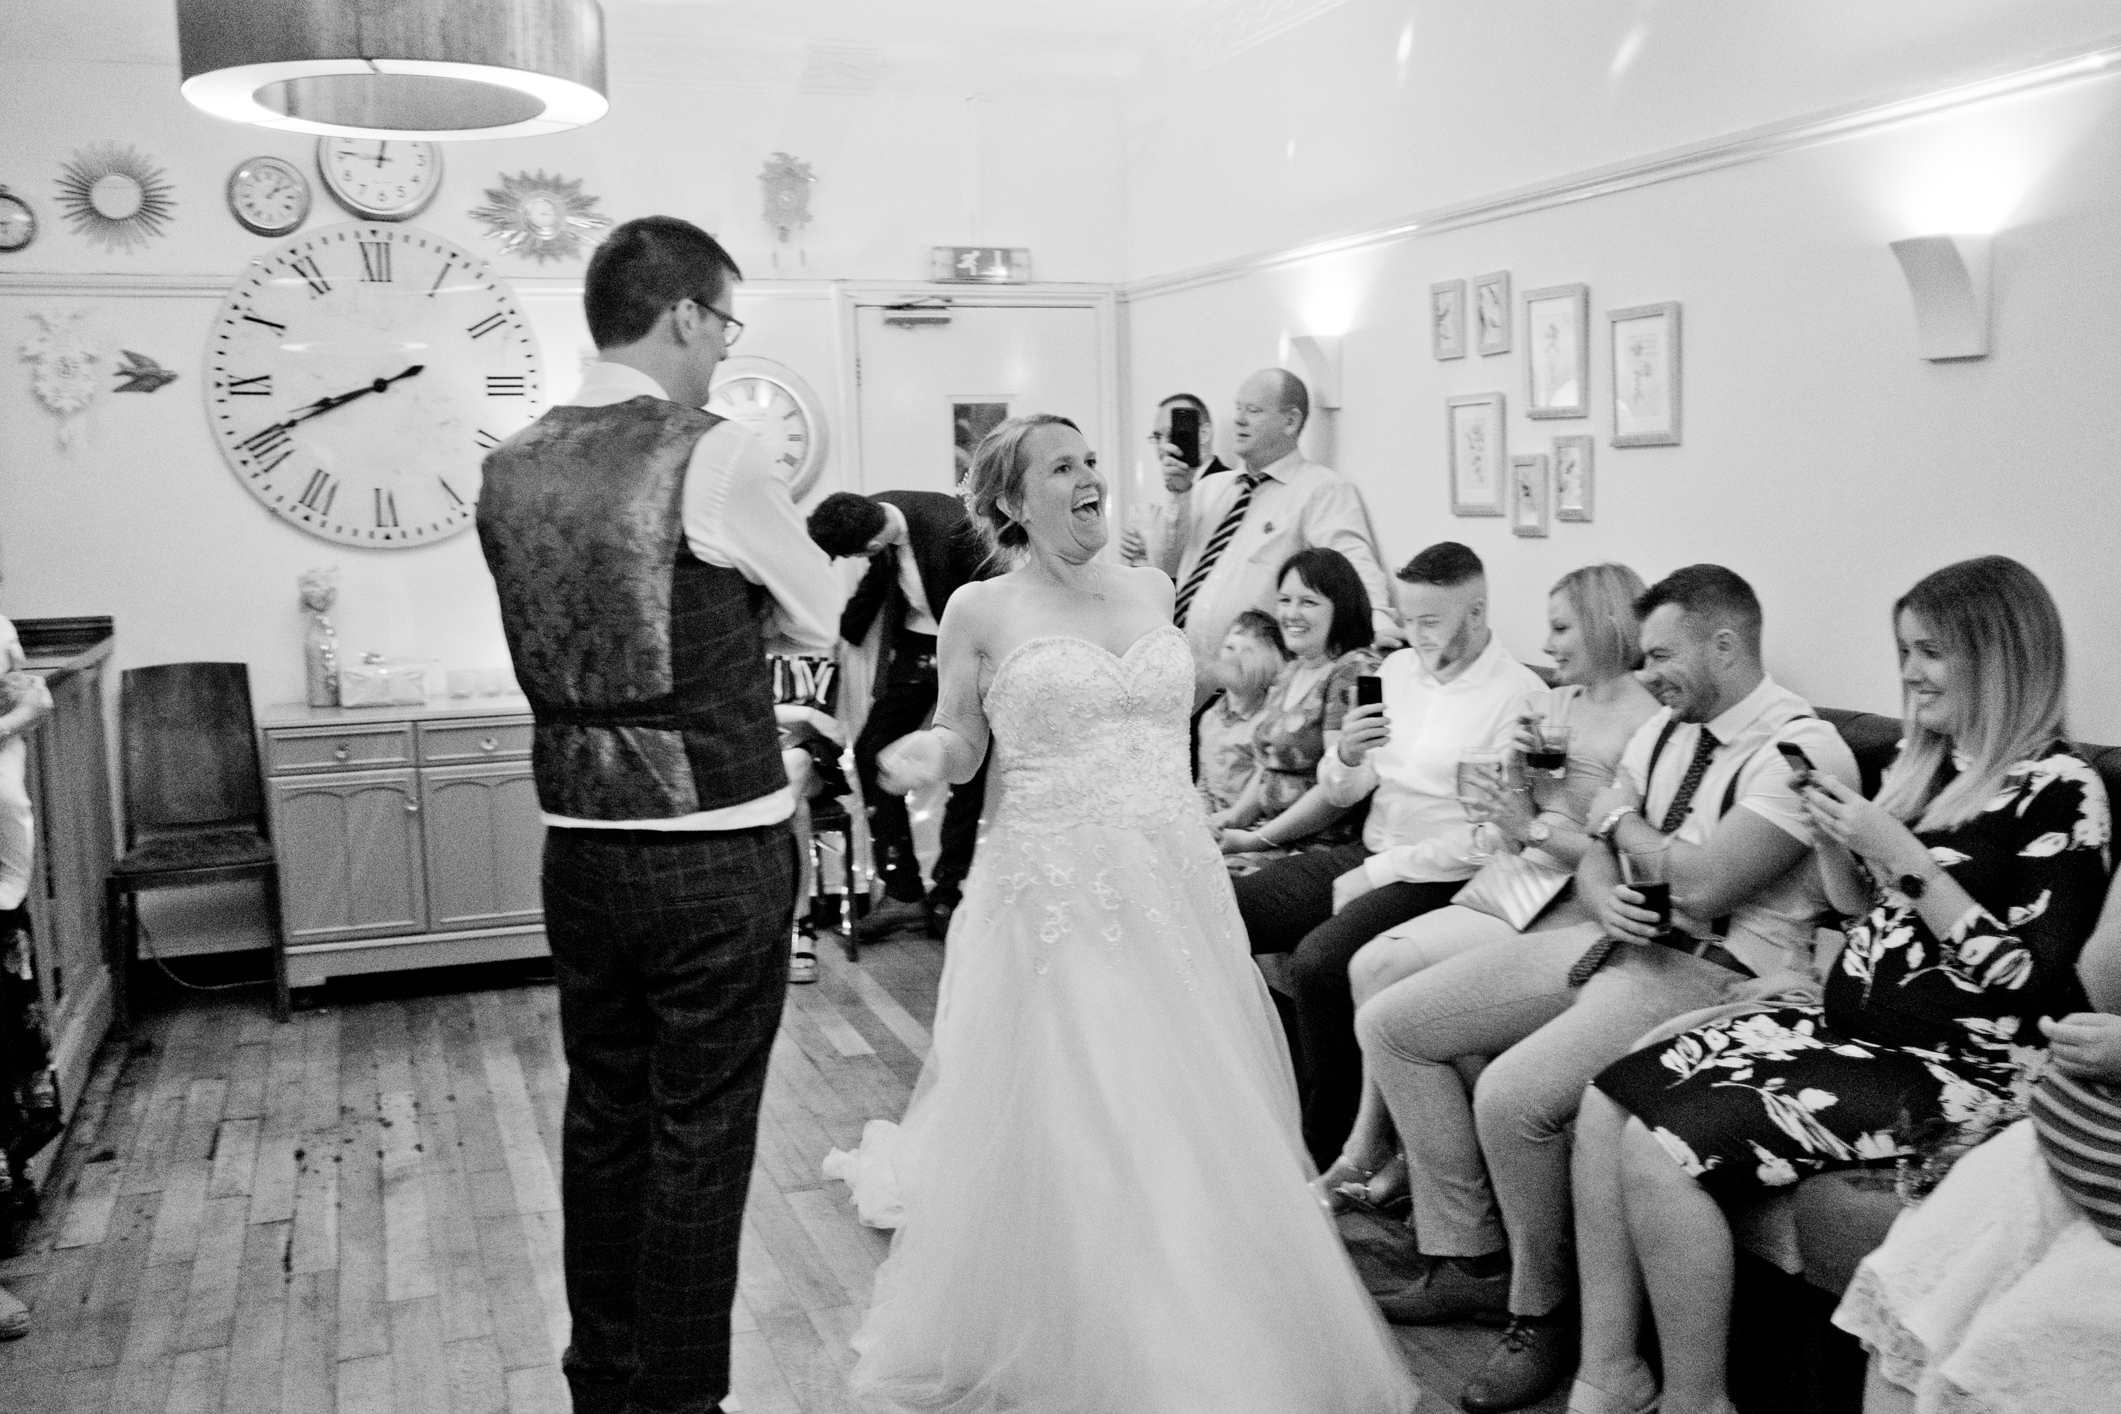 The first dance of Katy and Duncan. Choreographed professionally it was certainly good to watch.